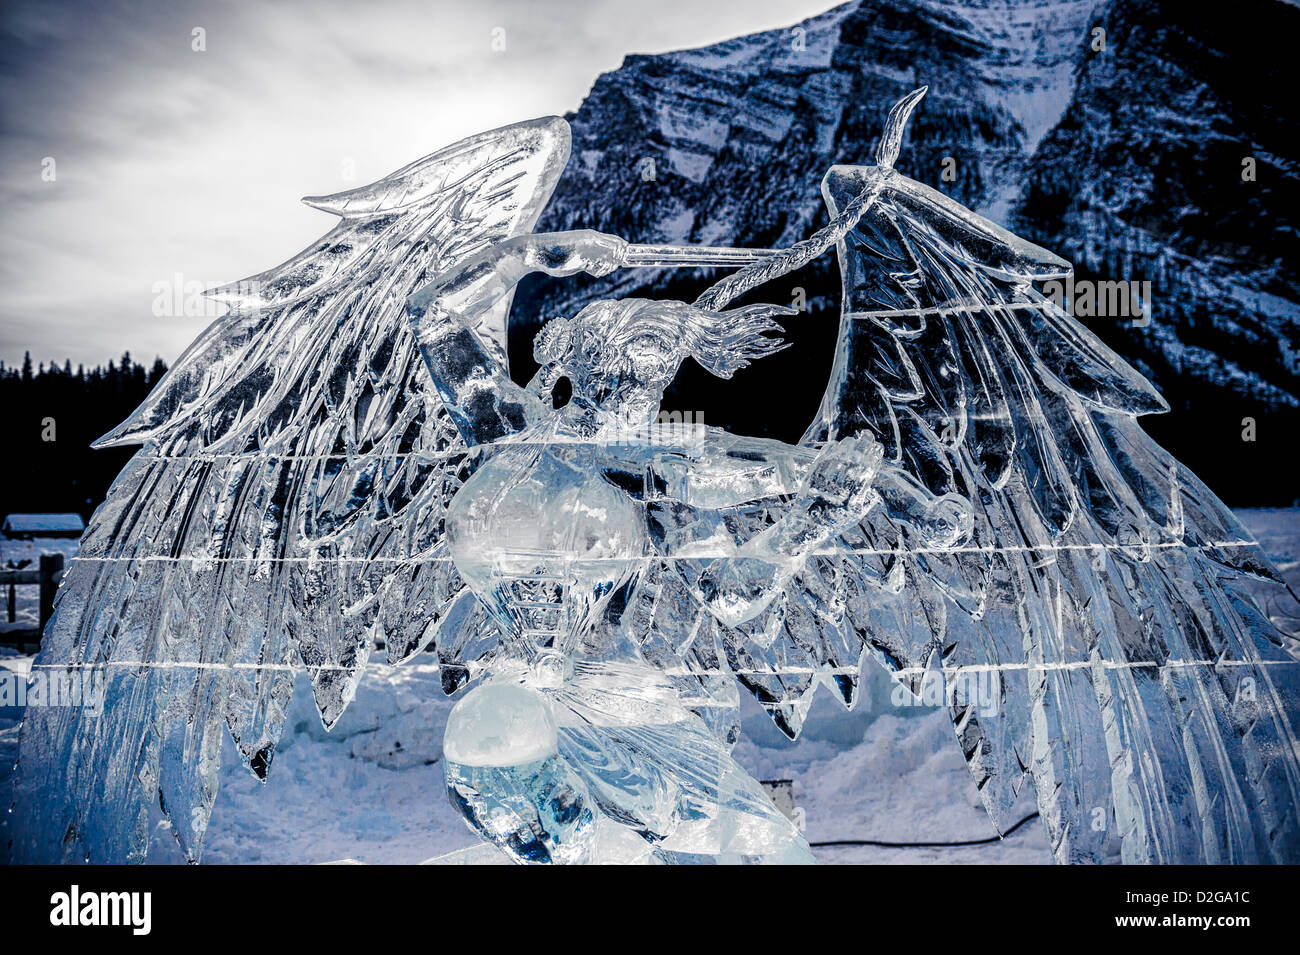 The Lake Louise Ice Magic Festival is the centerpiece of Banff National Park Snow Days Festival - Stock Image